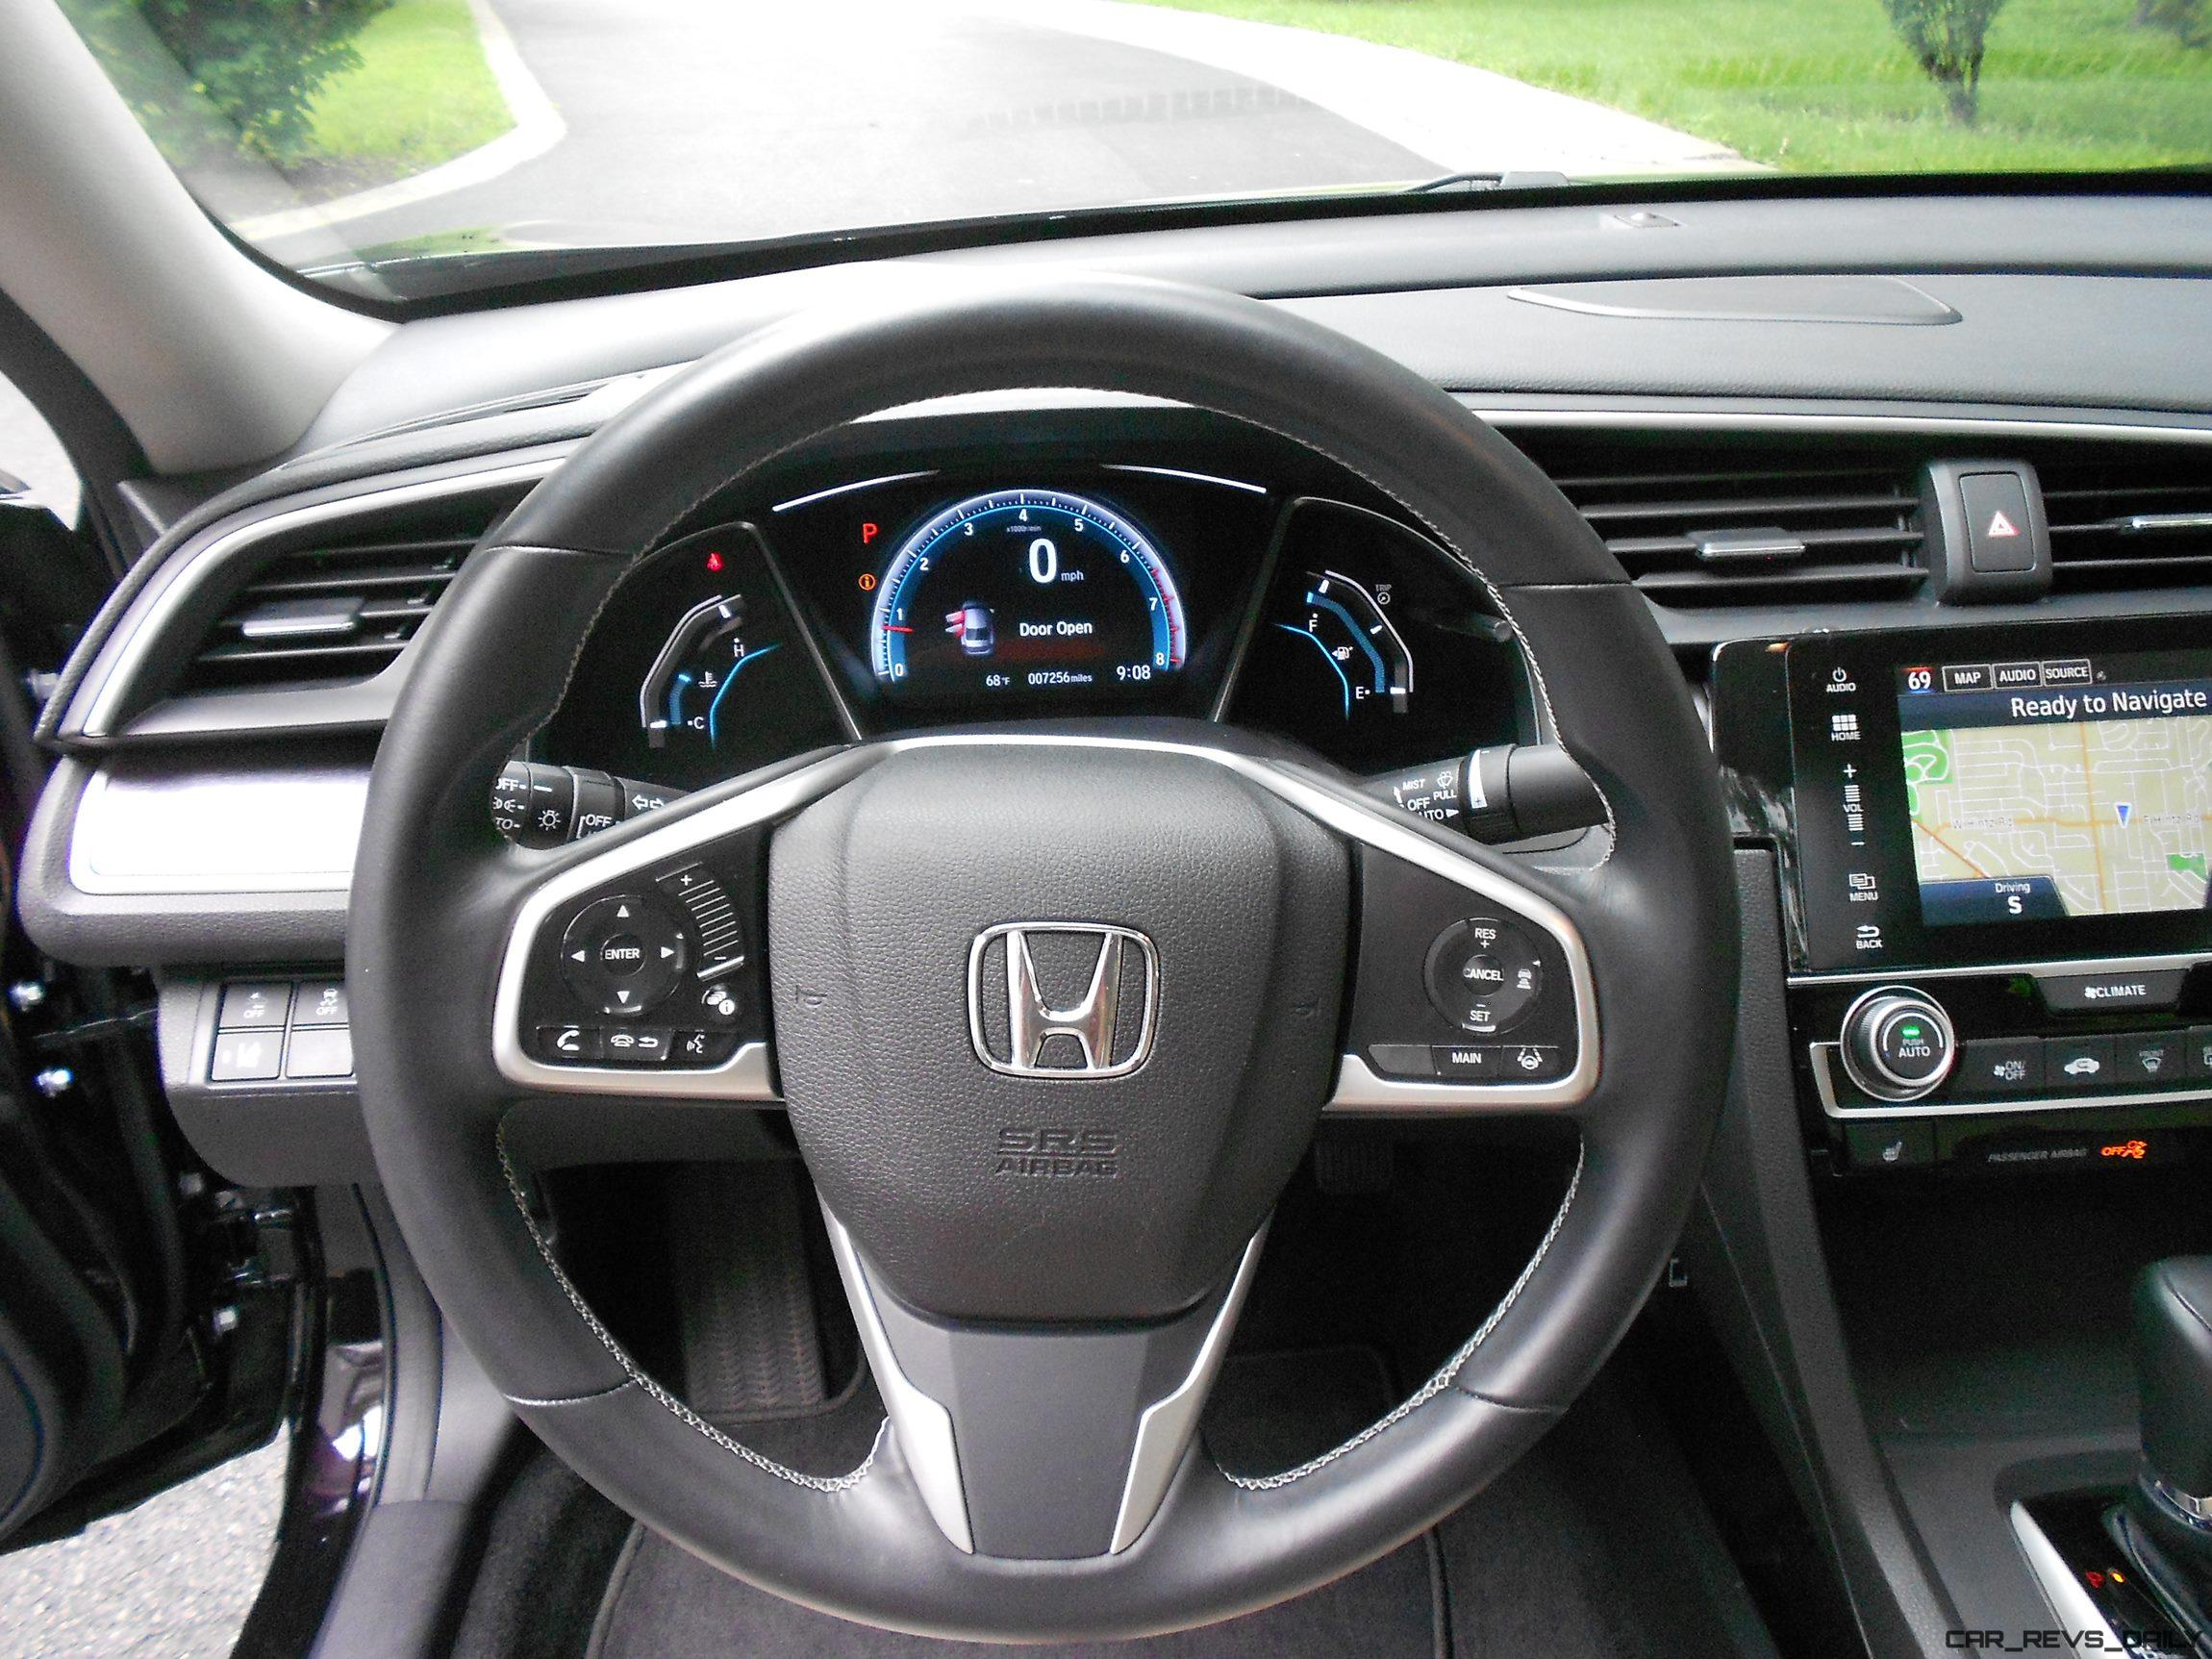 http://www.car-revs-daily.com/wp-content/uploads/2016/08/2016-Honda-Civic-Sedan-Interior-8.jpg